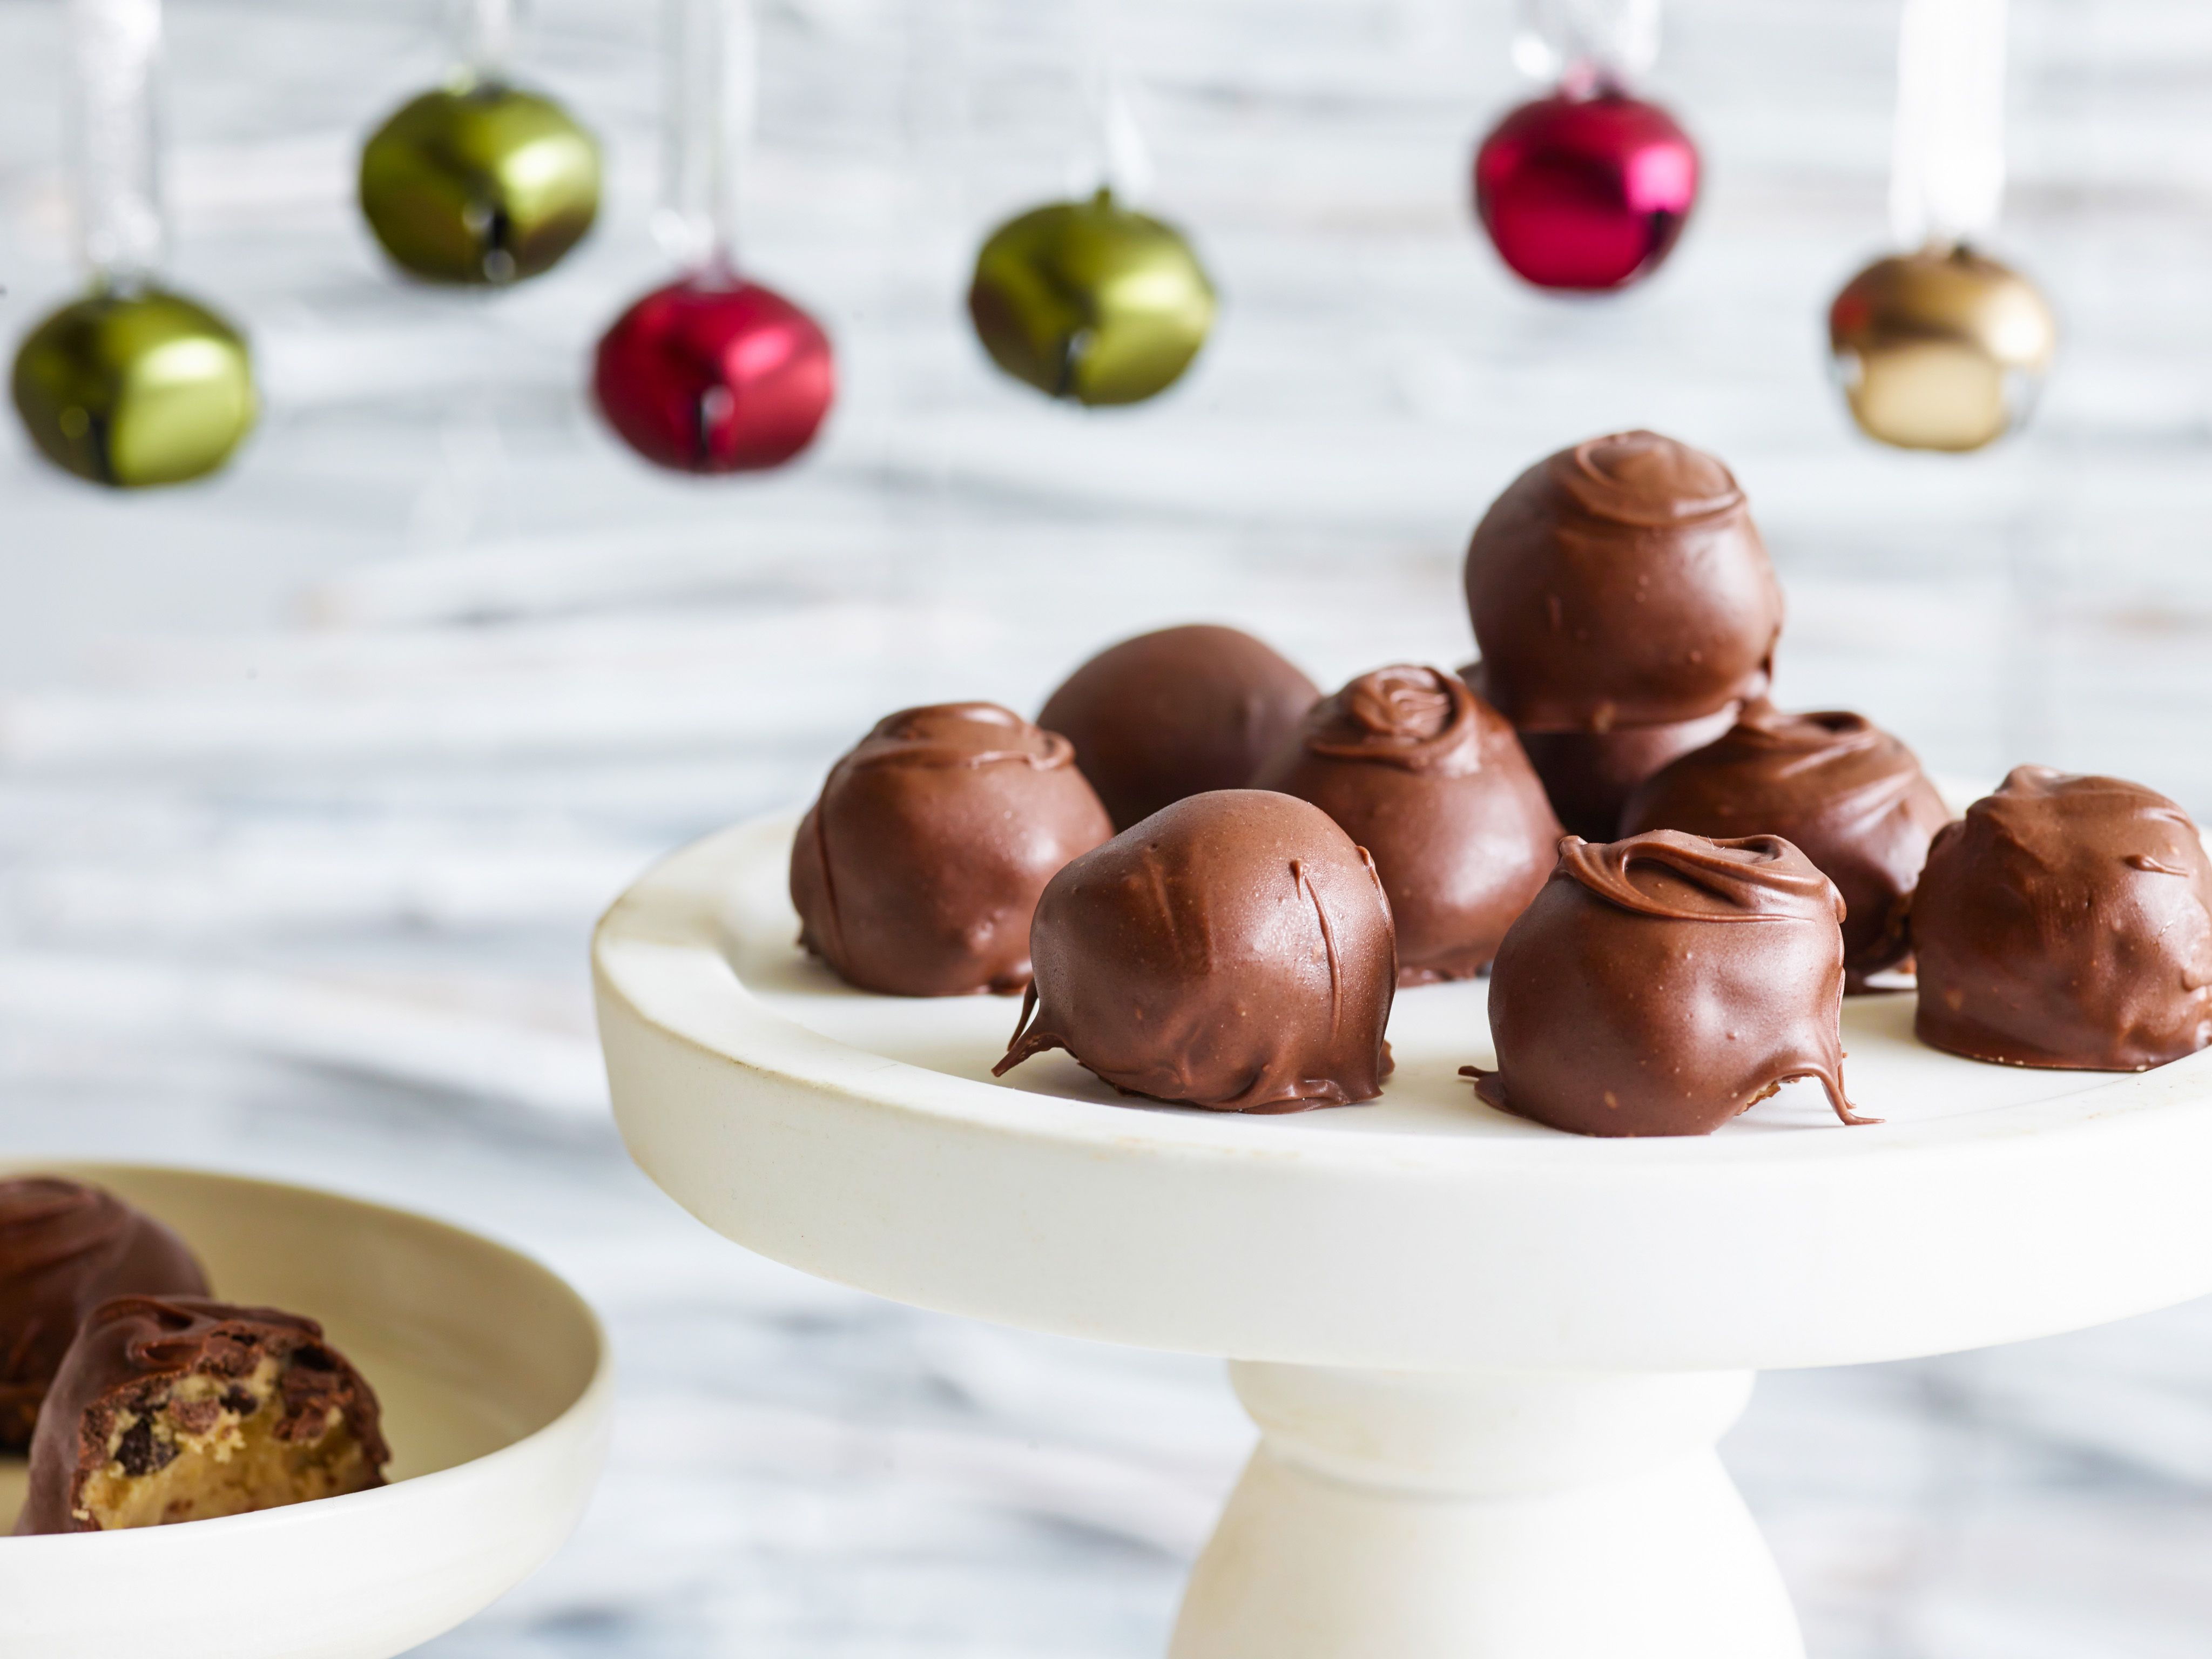 Chocolate chip cookie dough balls recipe dough balls trisha bite size chocolate chip cookie dough balls recipe trisha yearwood food network forumfinder Image collections